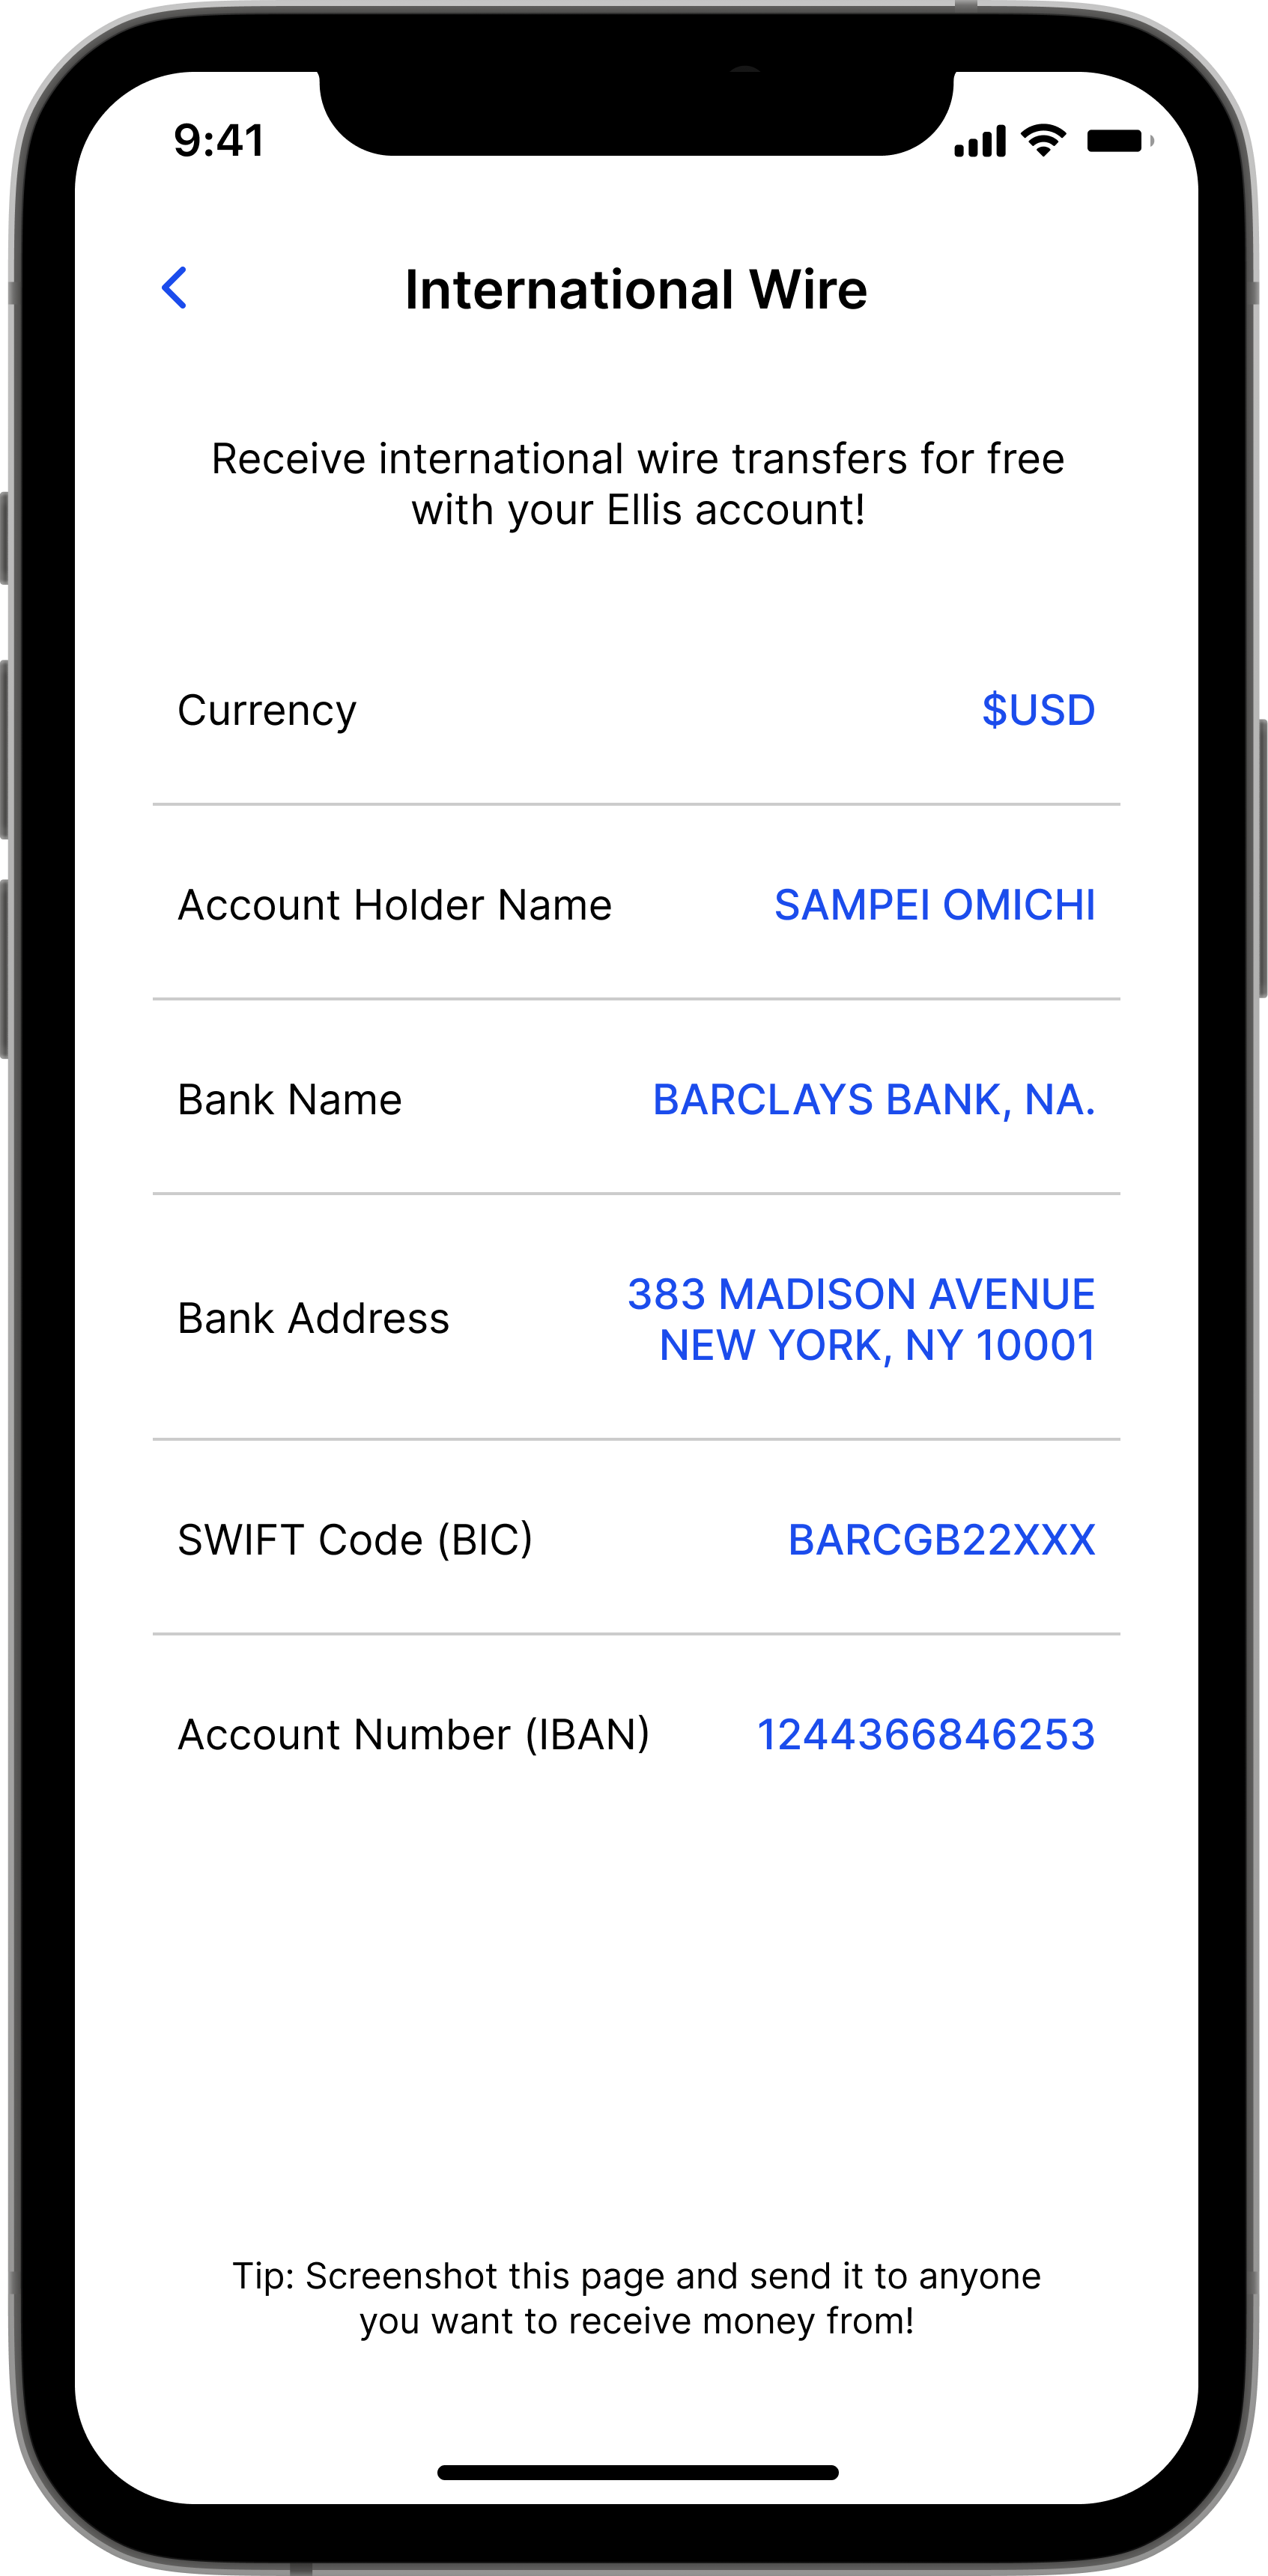 Preview of Ellis app showing free international wire transfers.